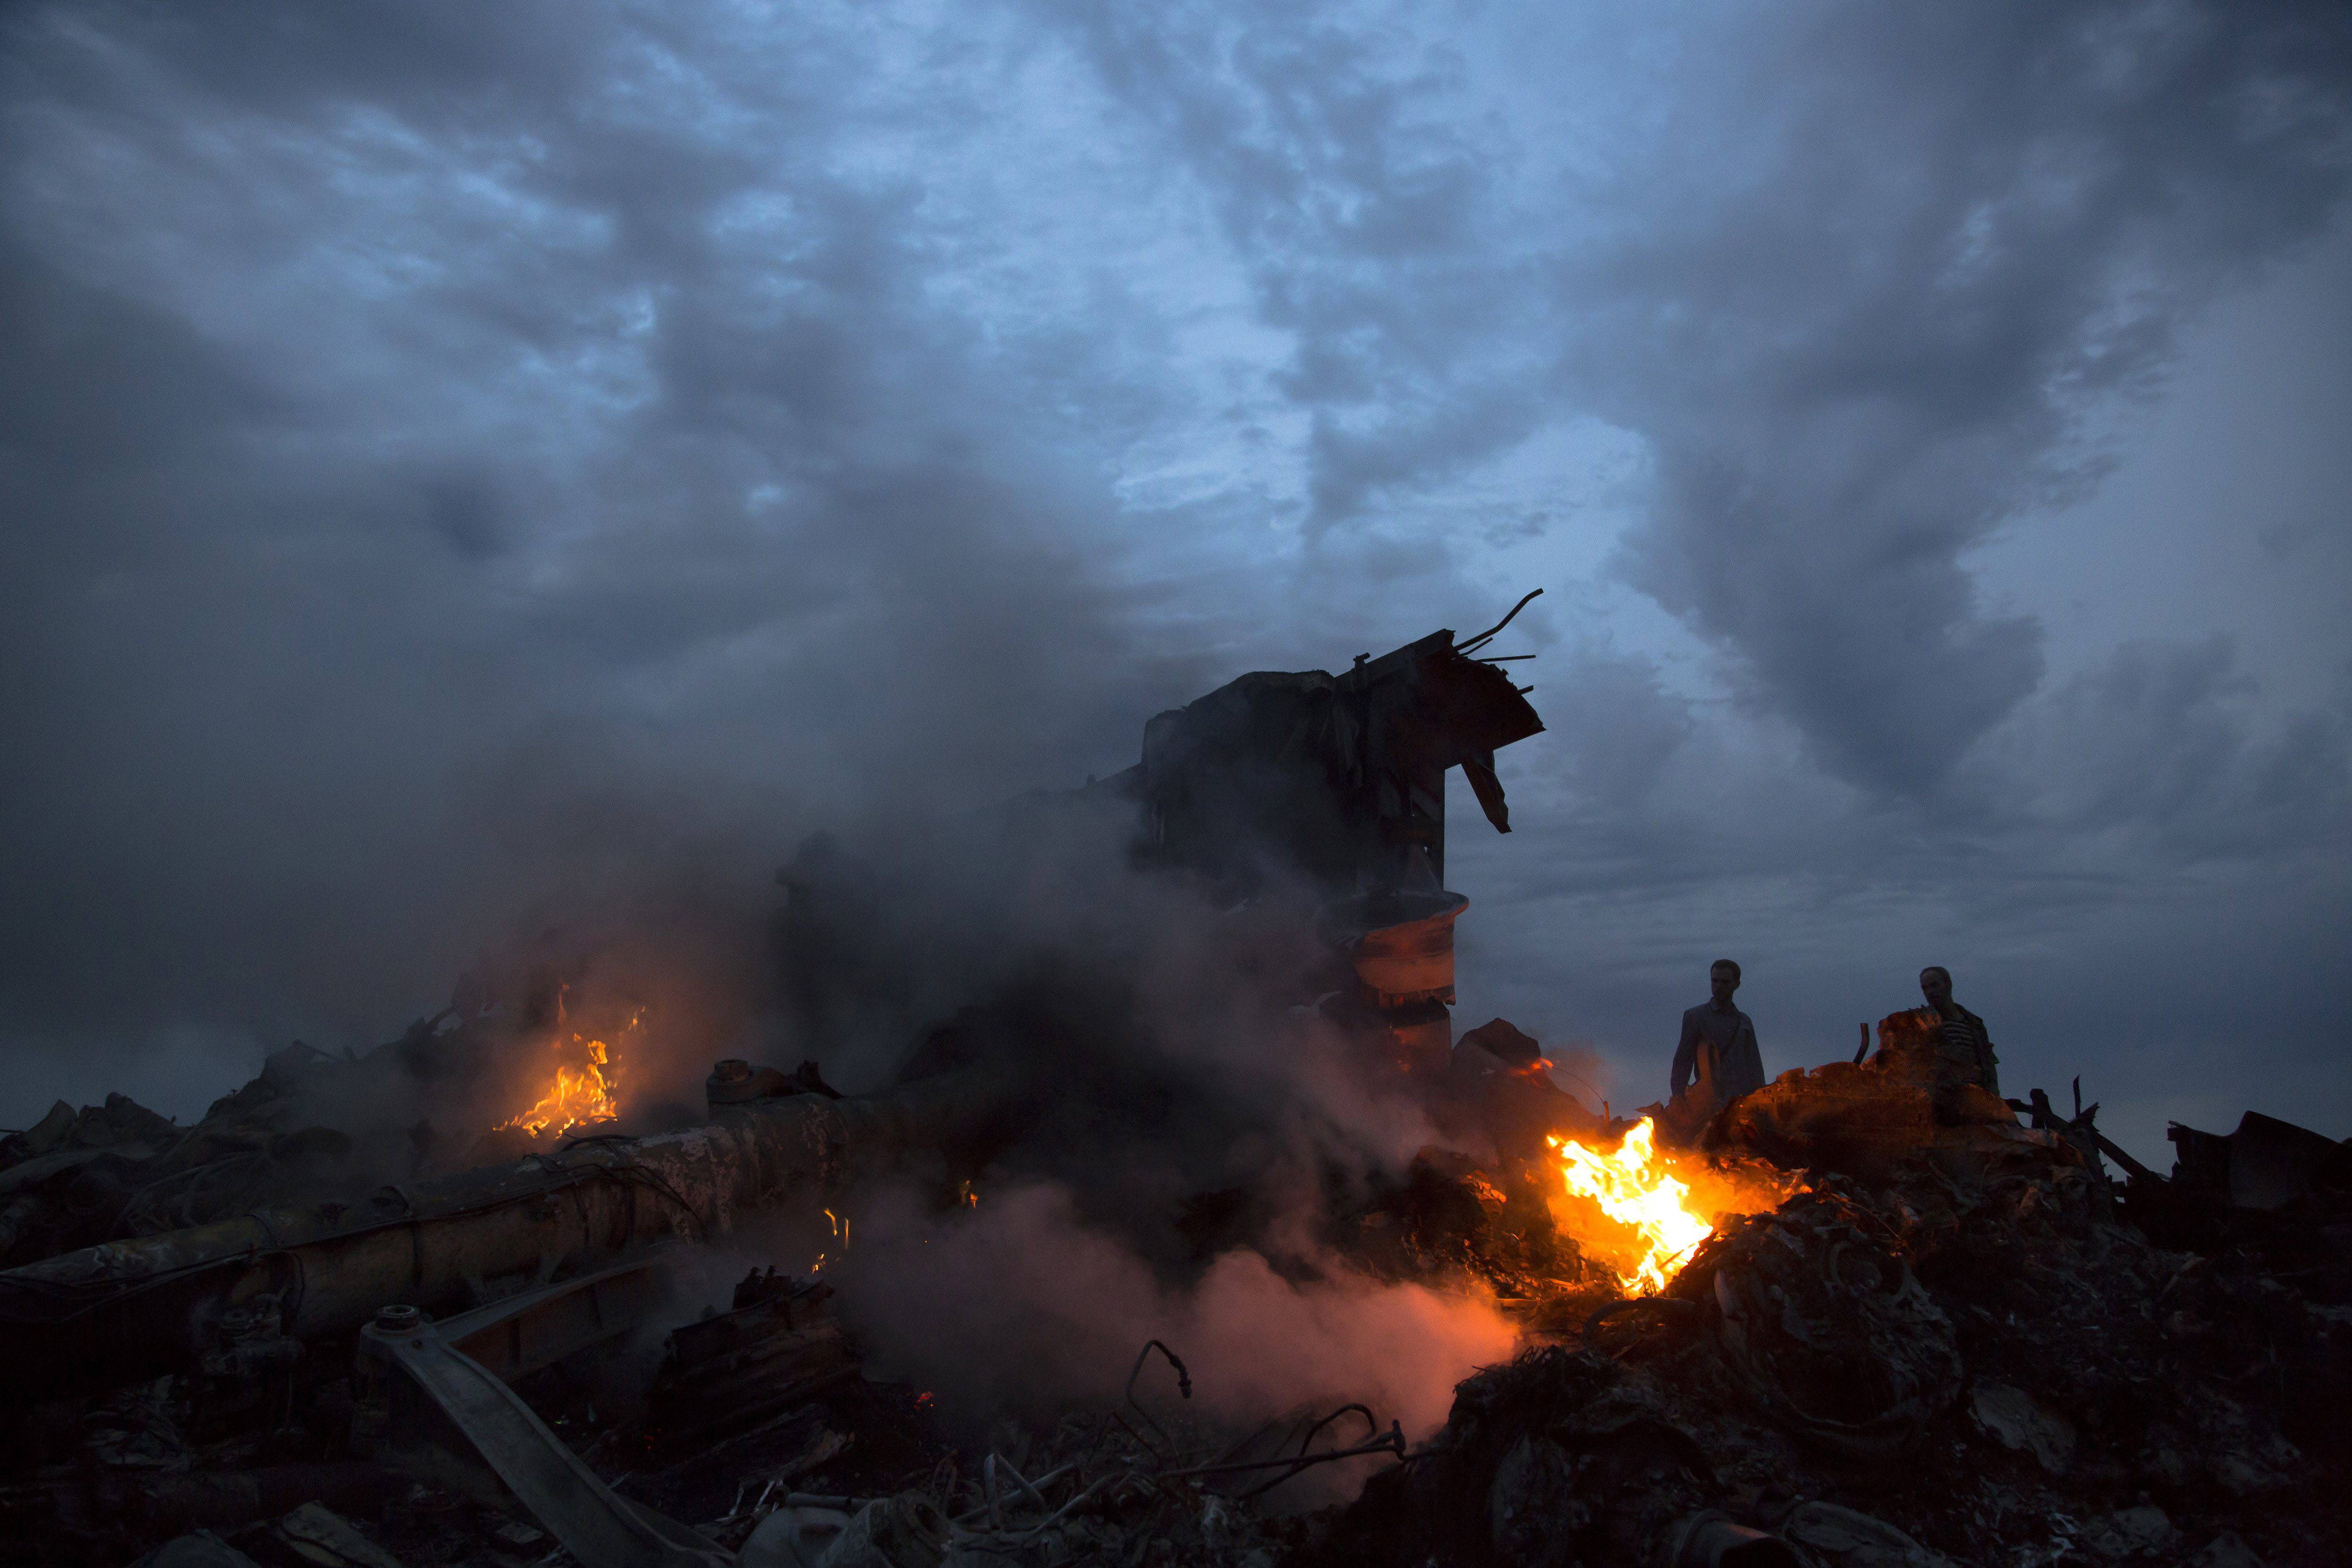 This July 17 photo shows people walking among burning debris at the crash site of Malaysia Airlines Flight 17 near the village of Hrabove, eastern Ukraine. Ukraine said the passenger plane was shot down as it flew over the country, killing all 298 people on board. A series of unanswered questions about the downing the flight shows the limits of U.S. intelligence-gathering even when it is intensely focused, as it has been in Ukraine since Russia seized Crimea in March.